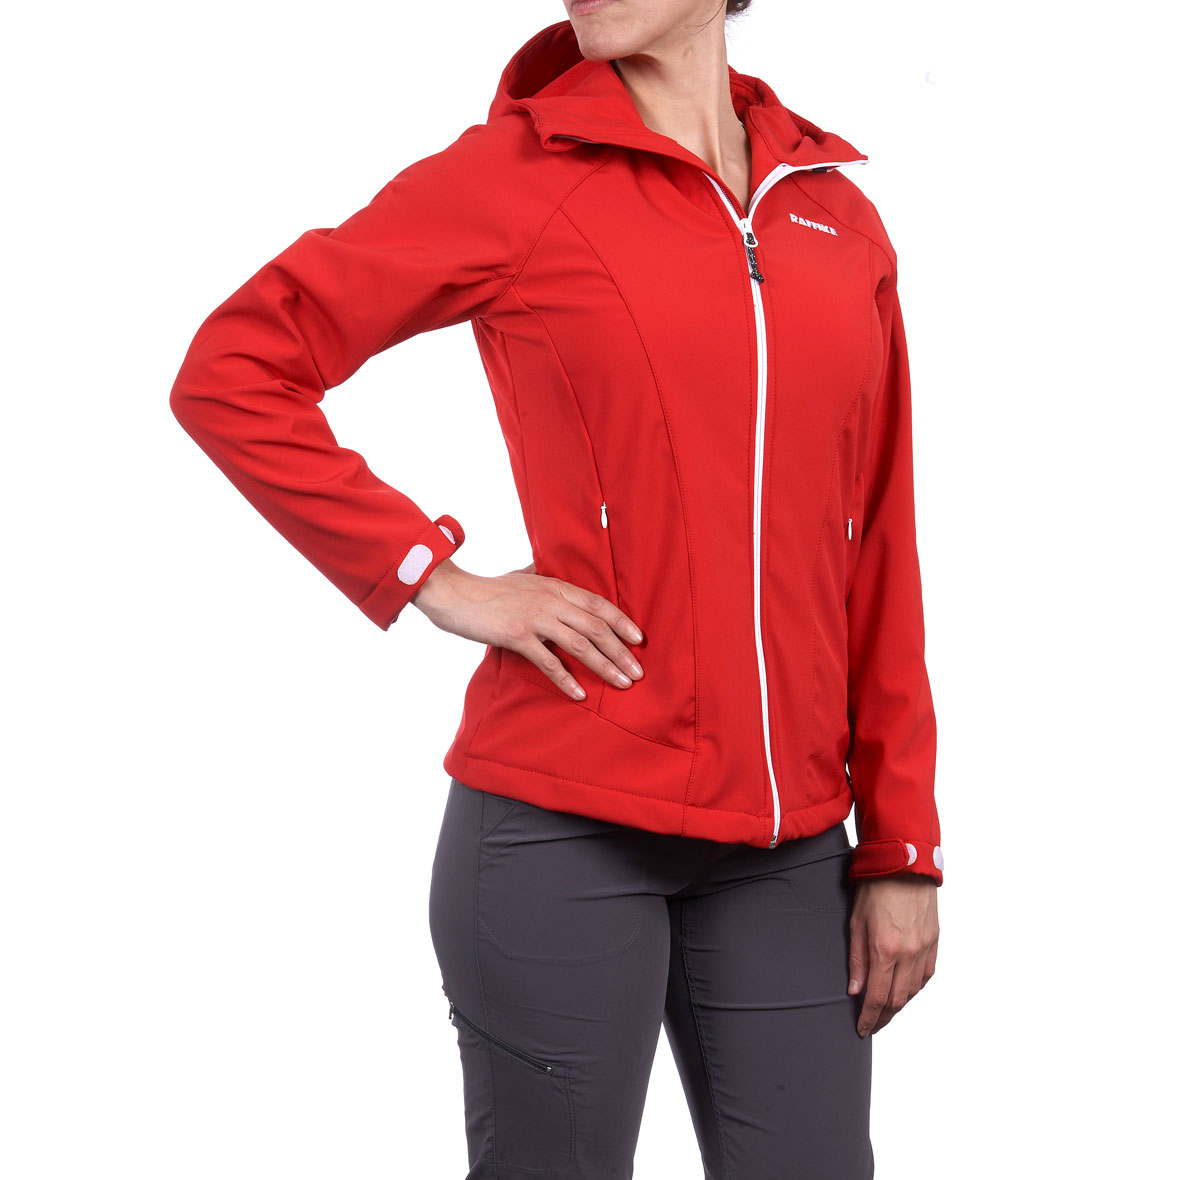 MG 8299 5SO50221030M Campera Absolut Rojo - Campera Absolut